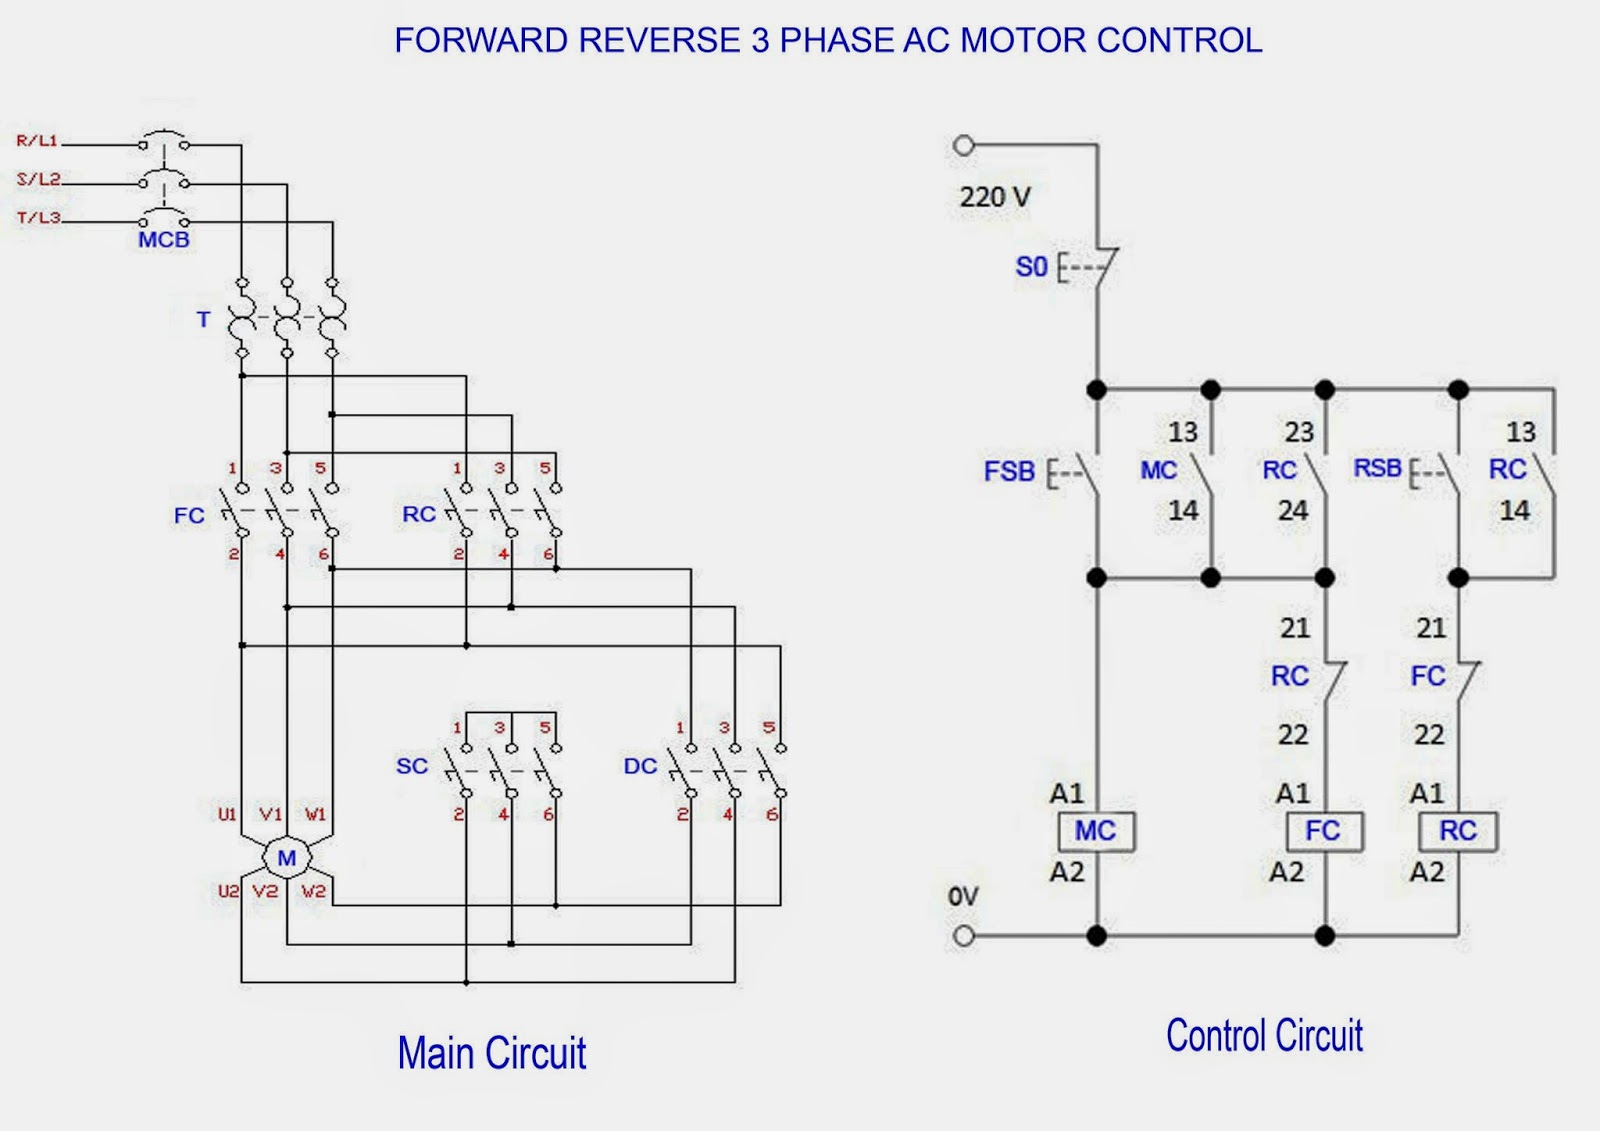 forward reverse 3 phase ac motor control wiring diagram electrical 3 phase contactor wiring forward reverse star delta wiring diagram